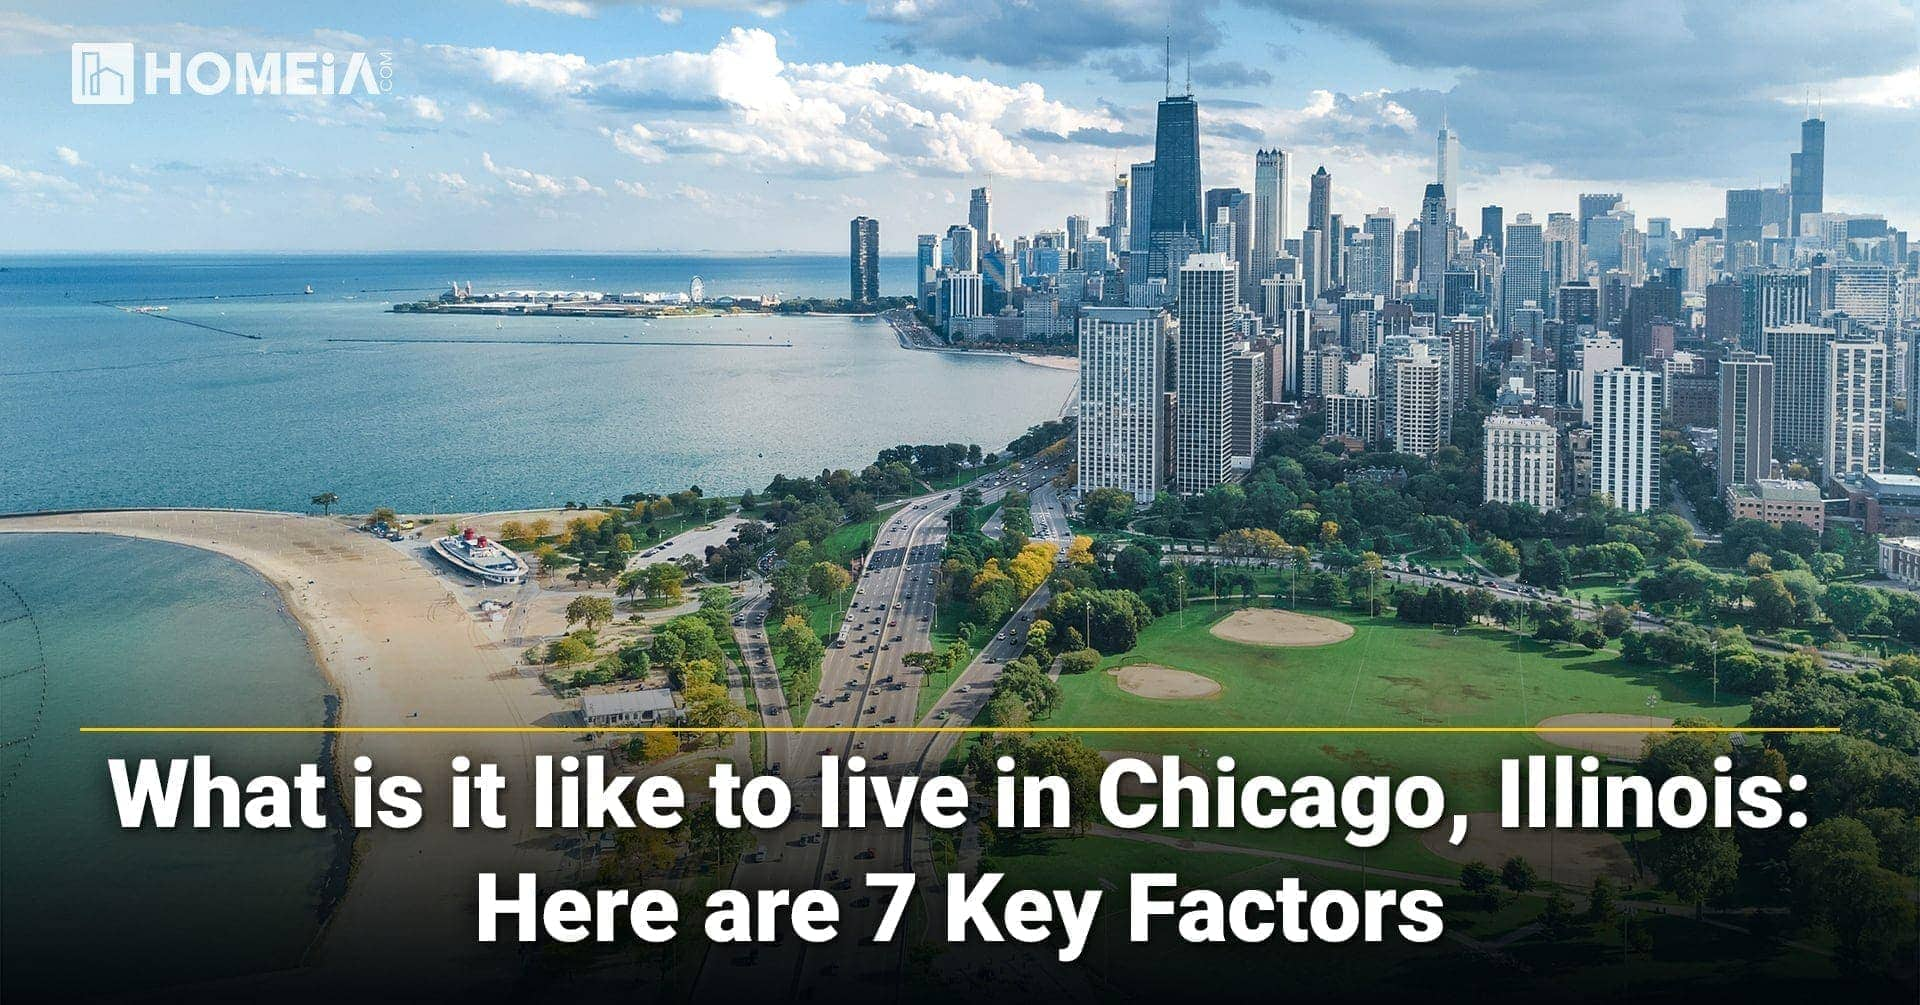 7 Key Factors You Should Consider before Living in Chicago, Illinois